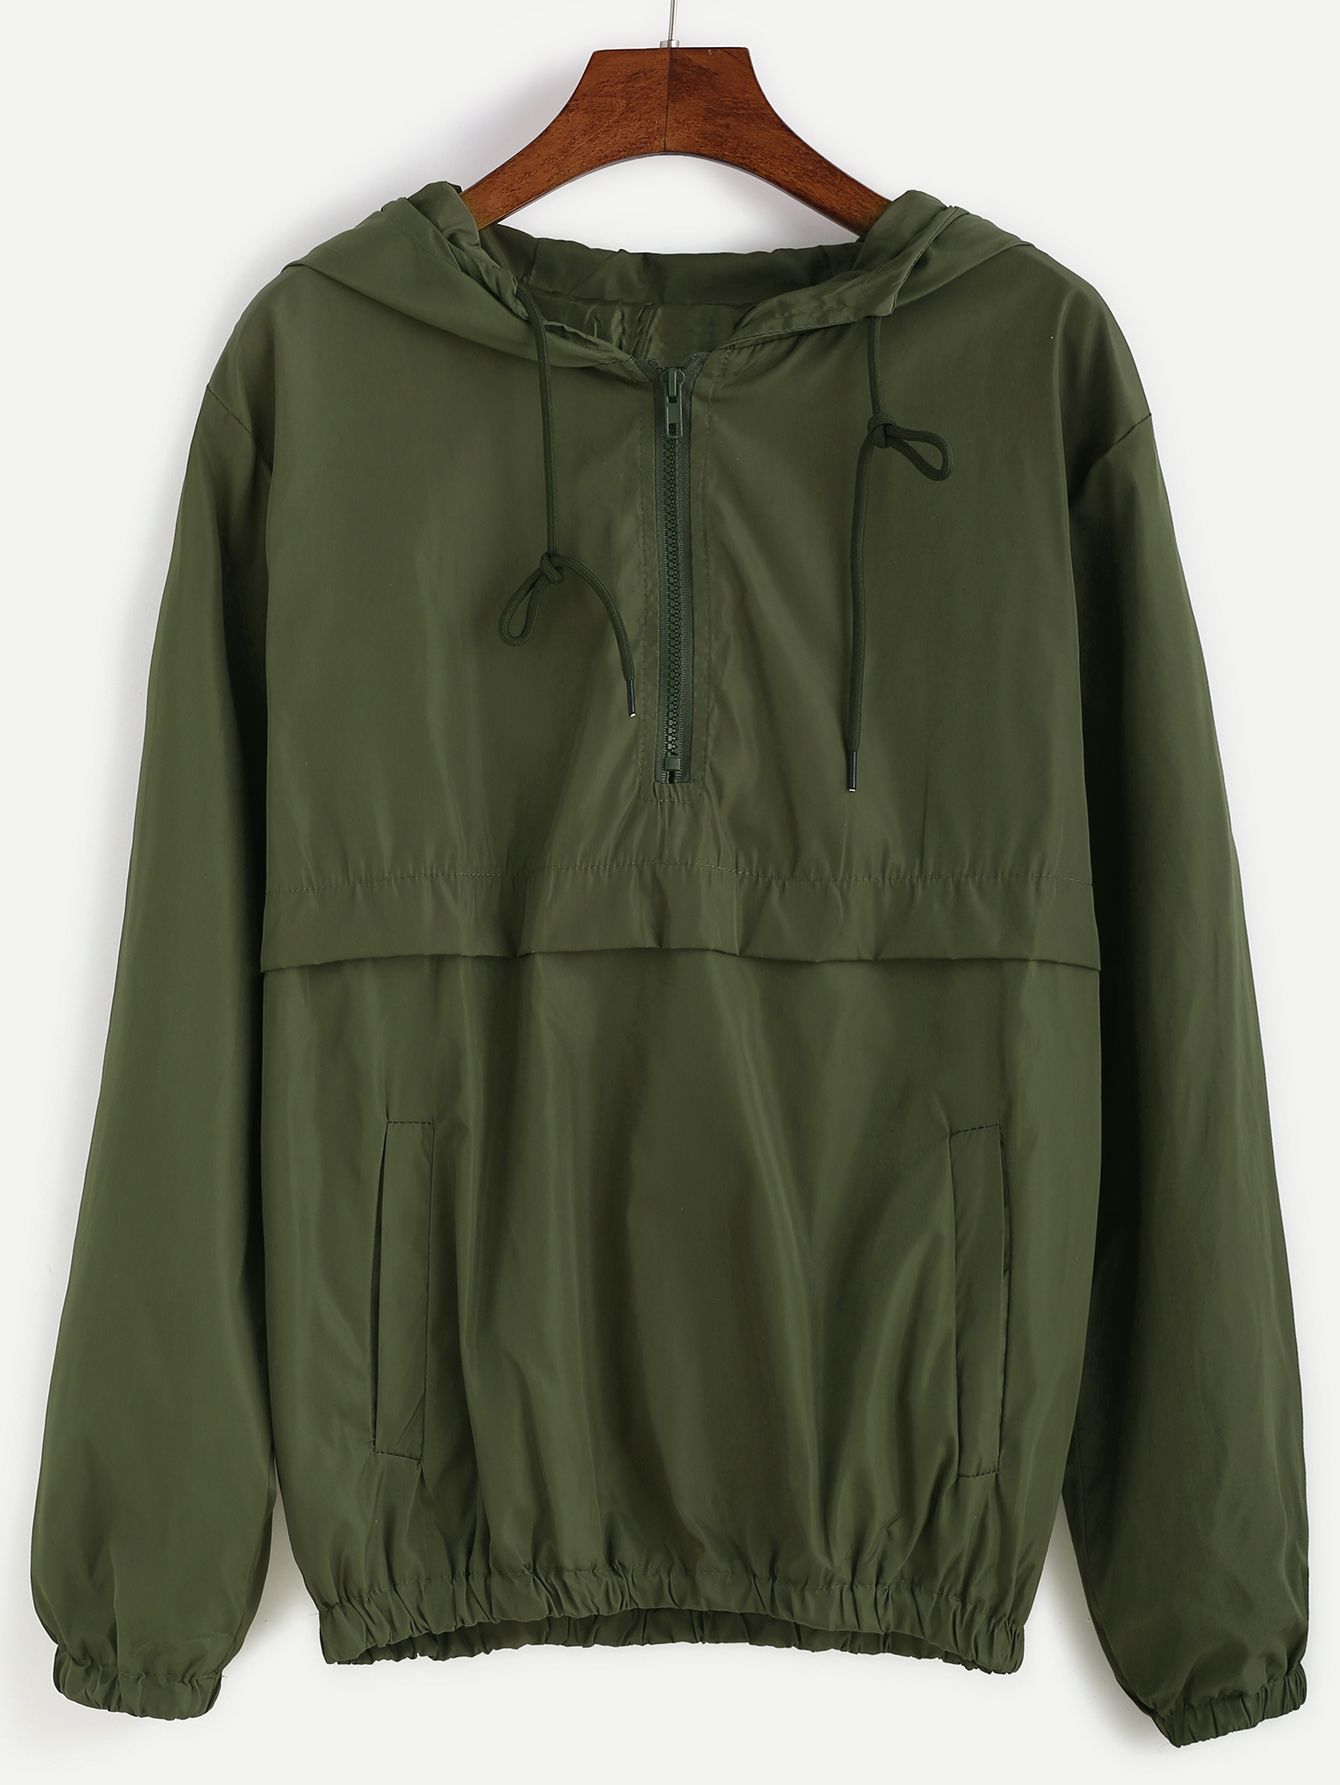 Shop Army Green Hooded Zipper Sweatshirt online. SheIn offers Army Green Hooded Zipper Sweatshirt & more to fit your fashionable needs.